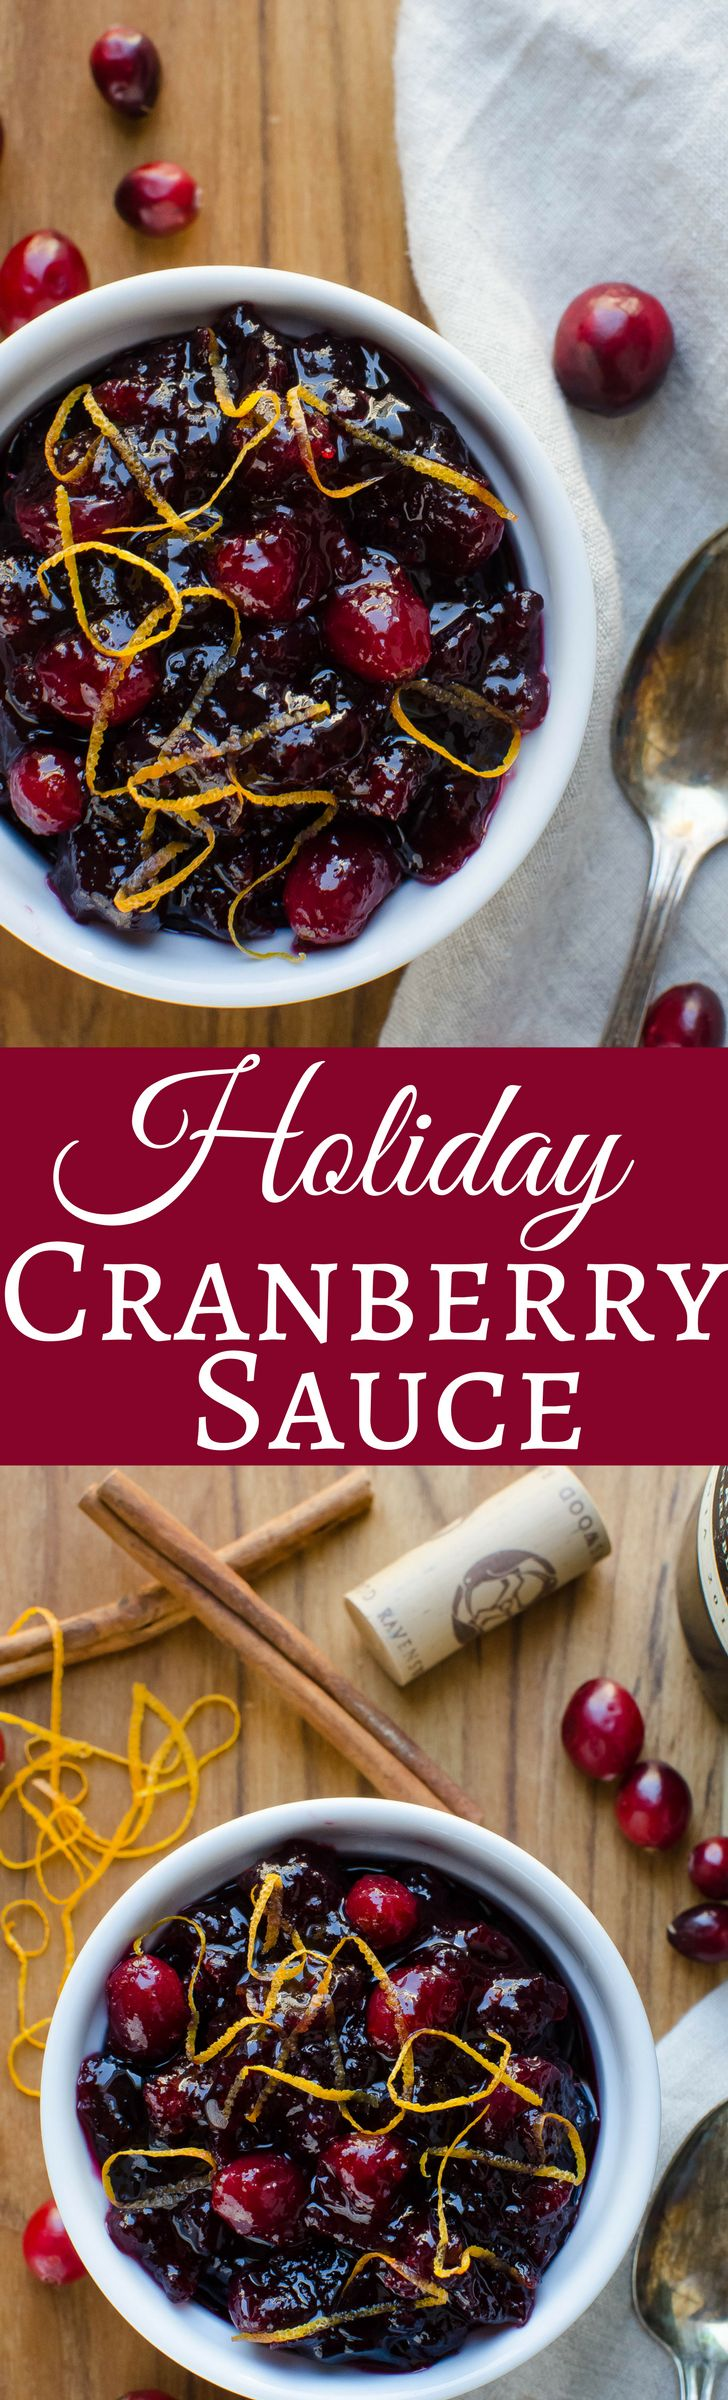 A crazy good Cranberry Sauce with cinnamon, cloves, allspice and WINE!  Ah-May-Zing!